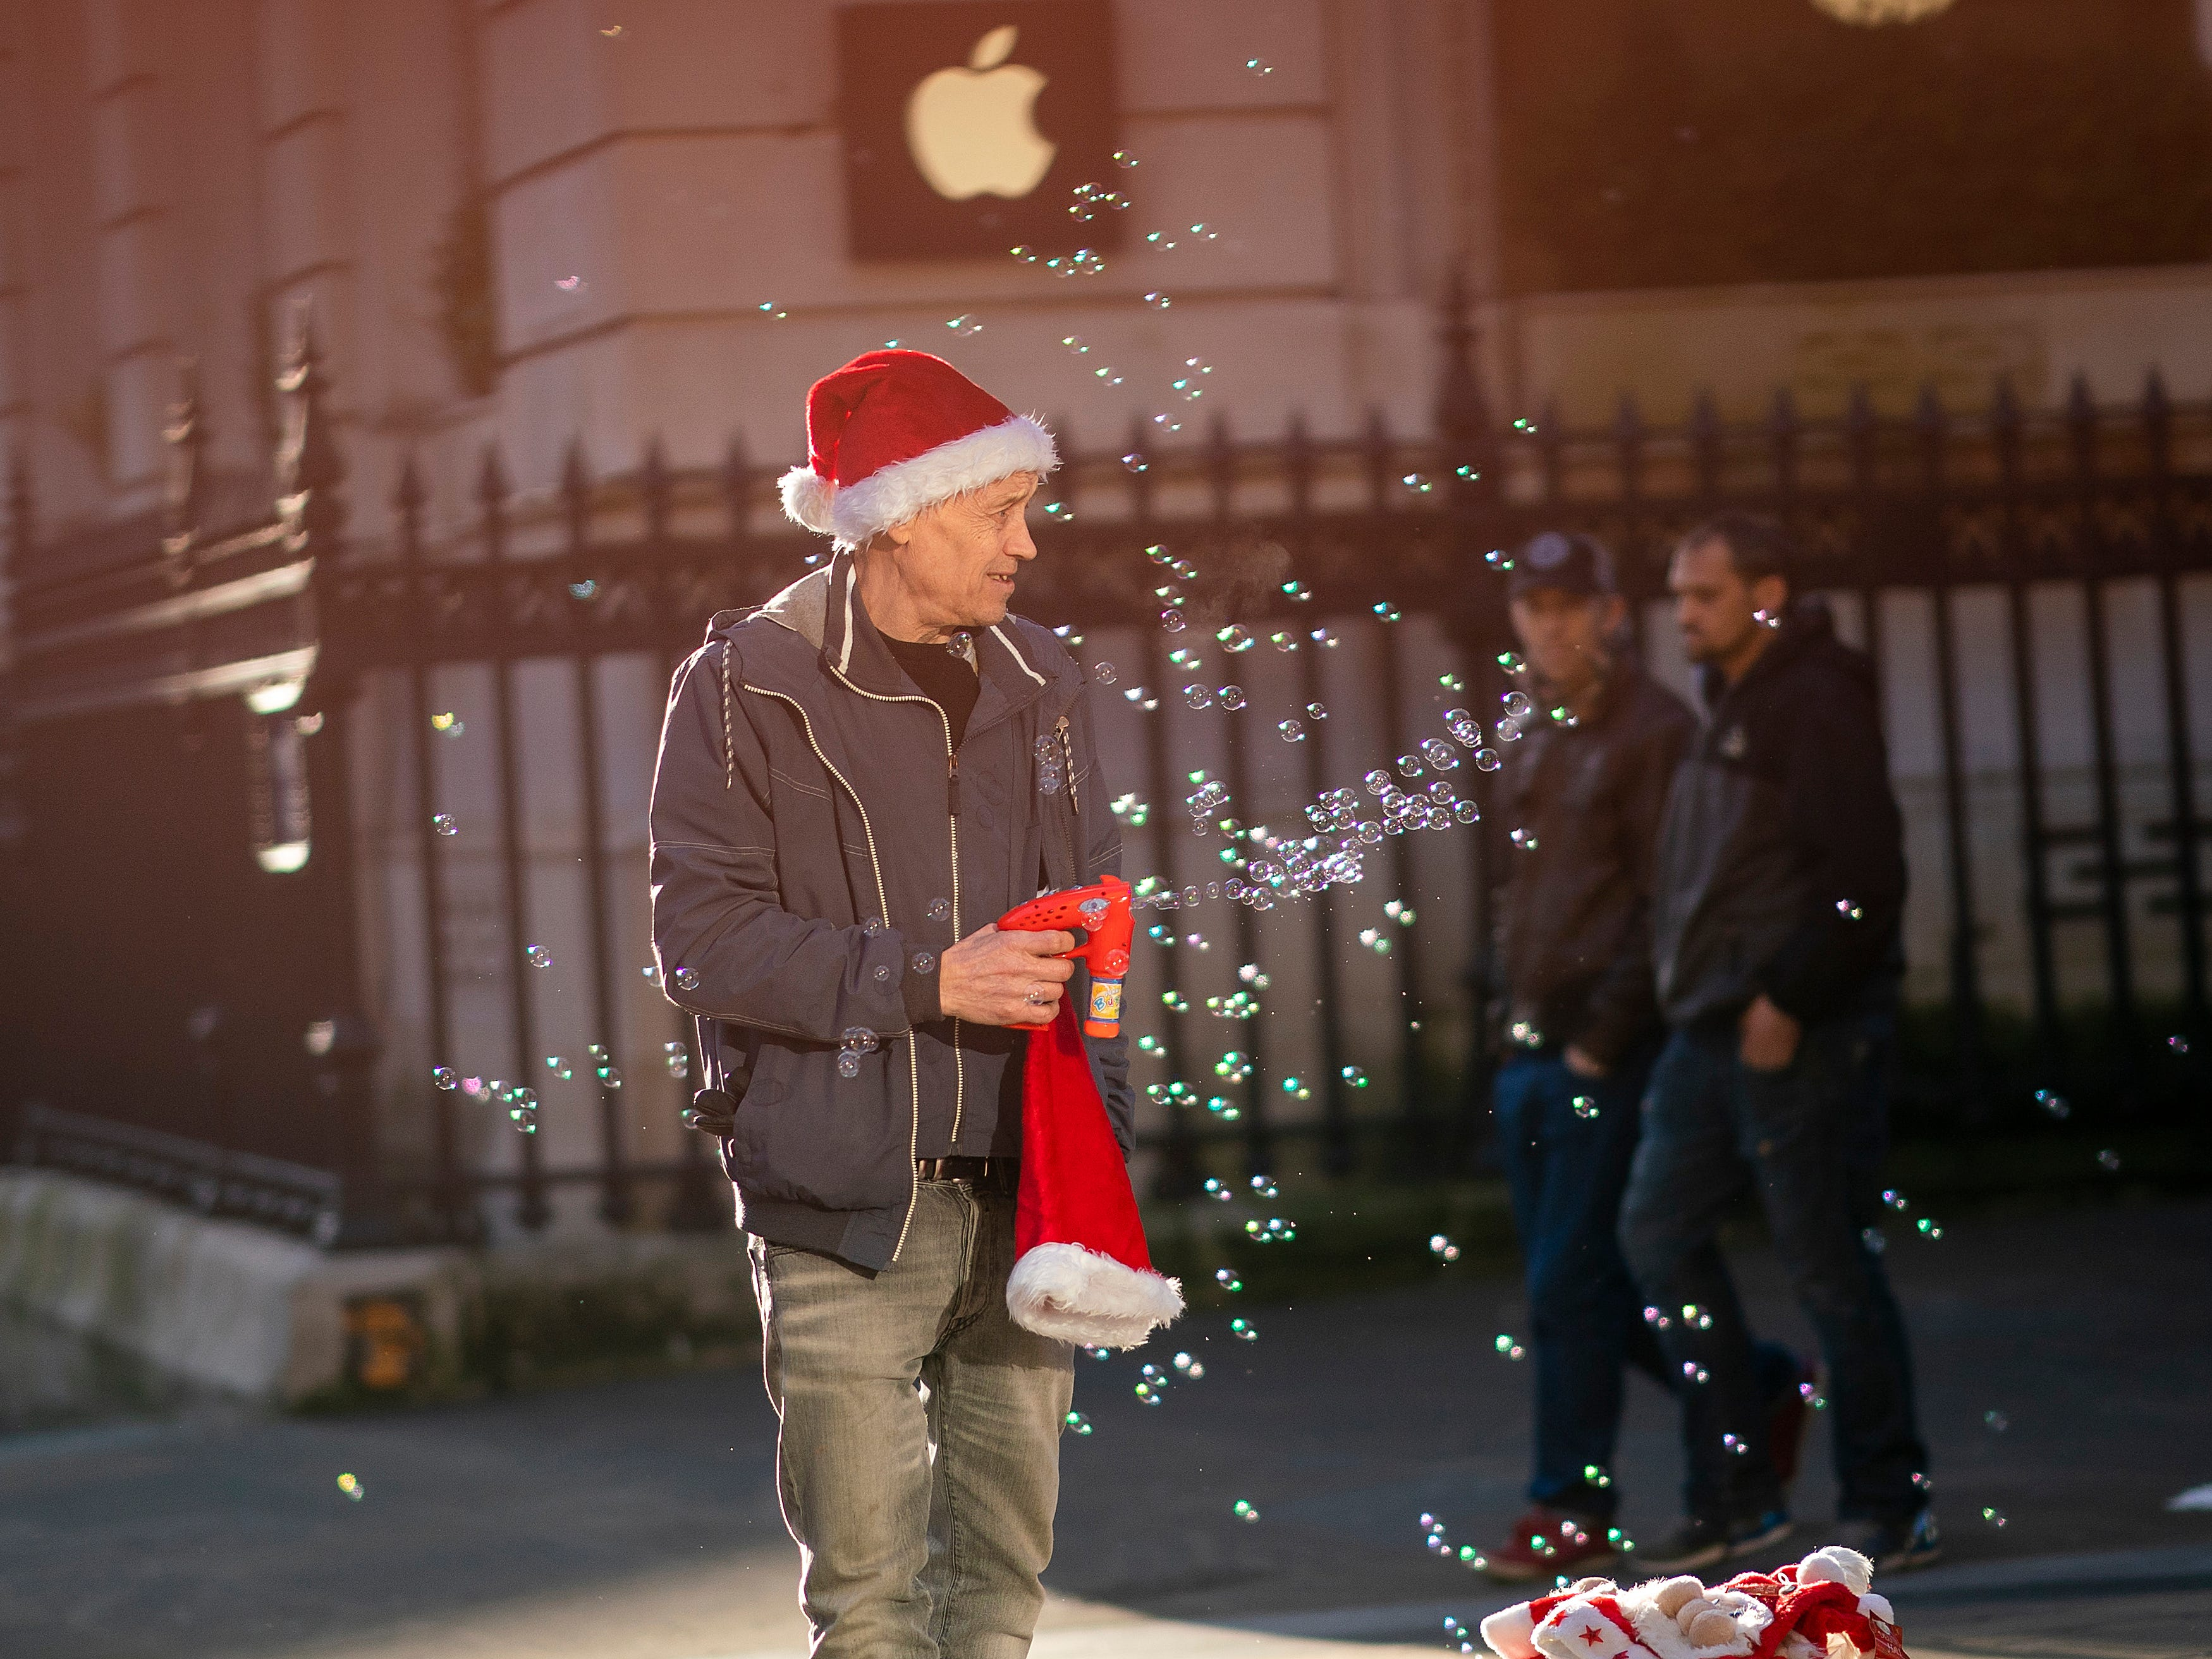 A street vendor sells Santa hats and a bubble machine as shoppers make their last minute purchases on Christmas Eve on December 24, 2018 in Birmingham, England.